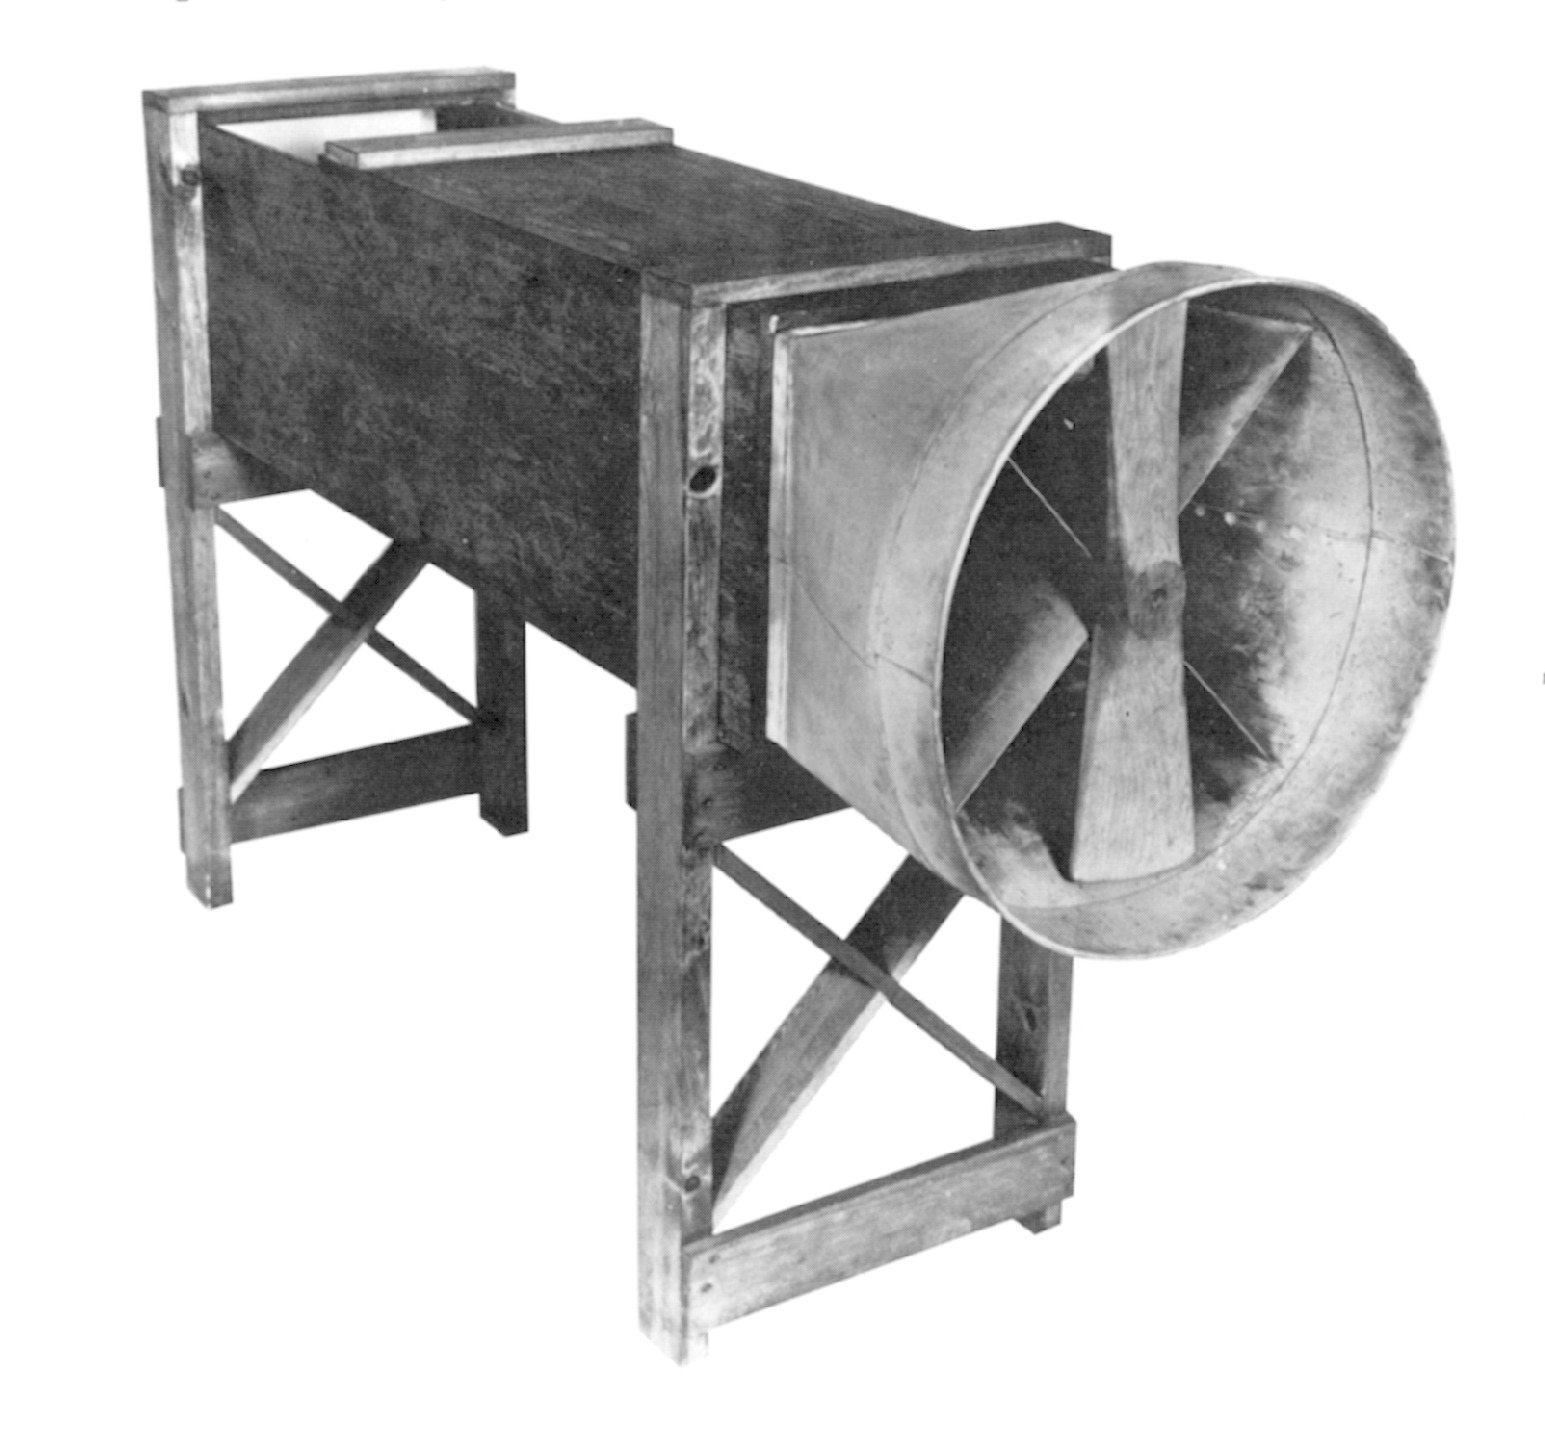 Wind tunnel used by the Wright brothers in 1901. Source: wright-brothers.org